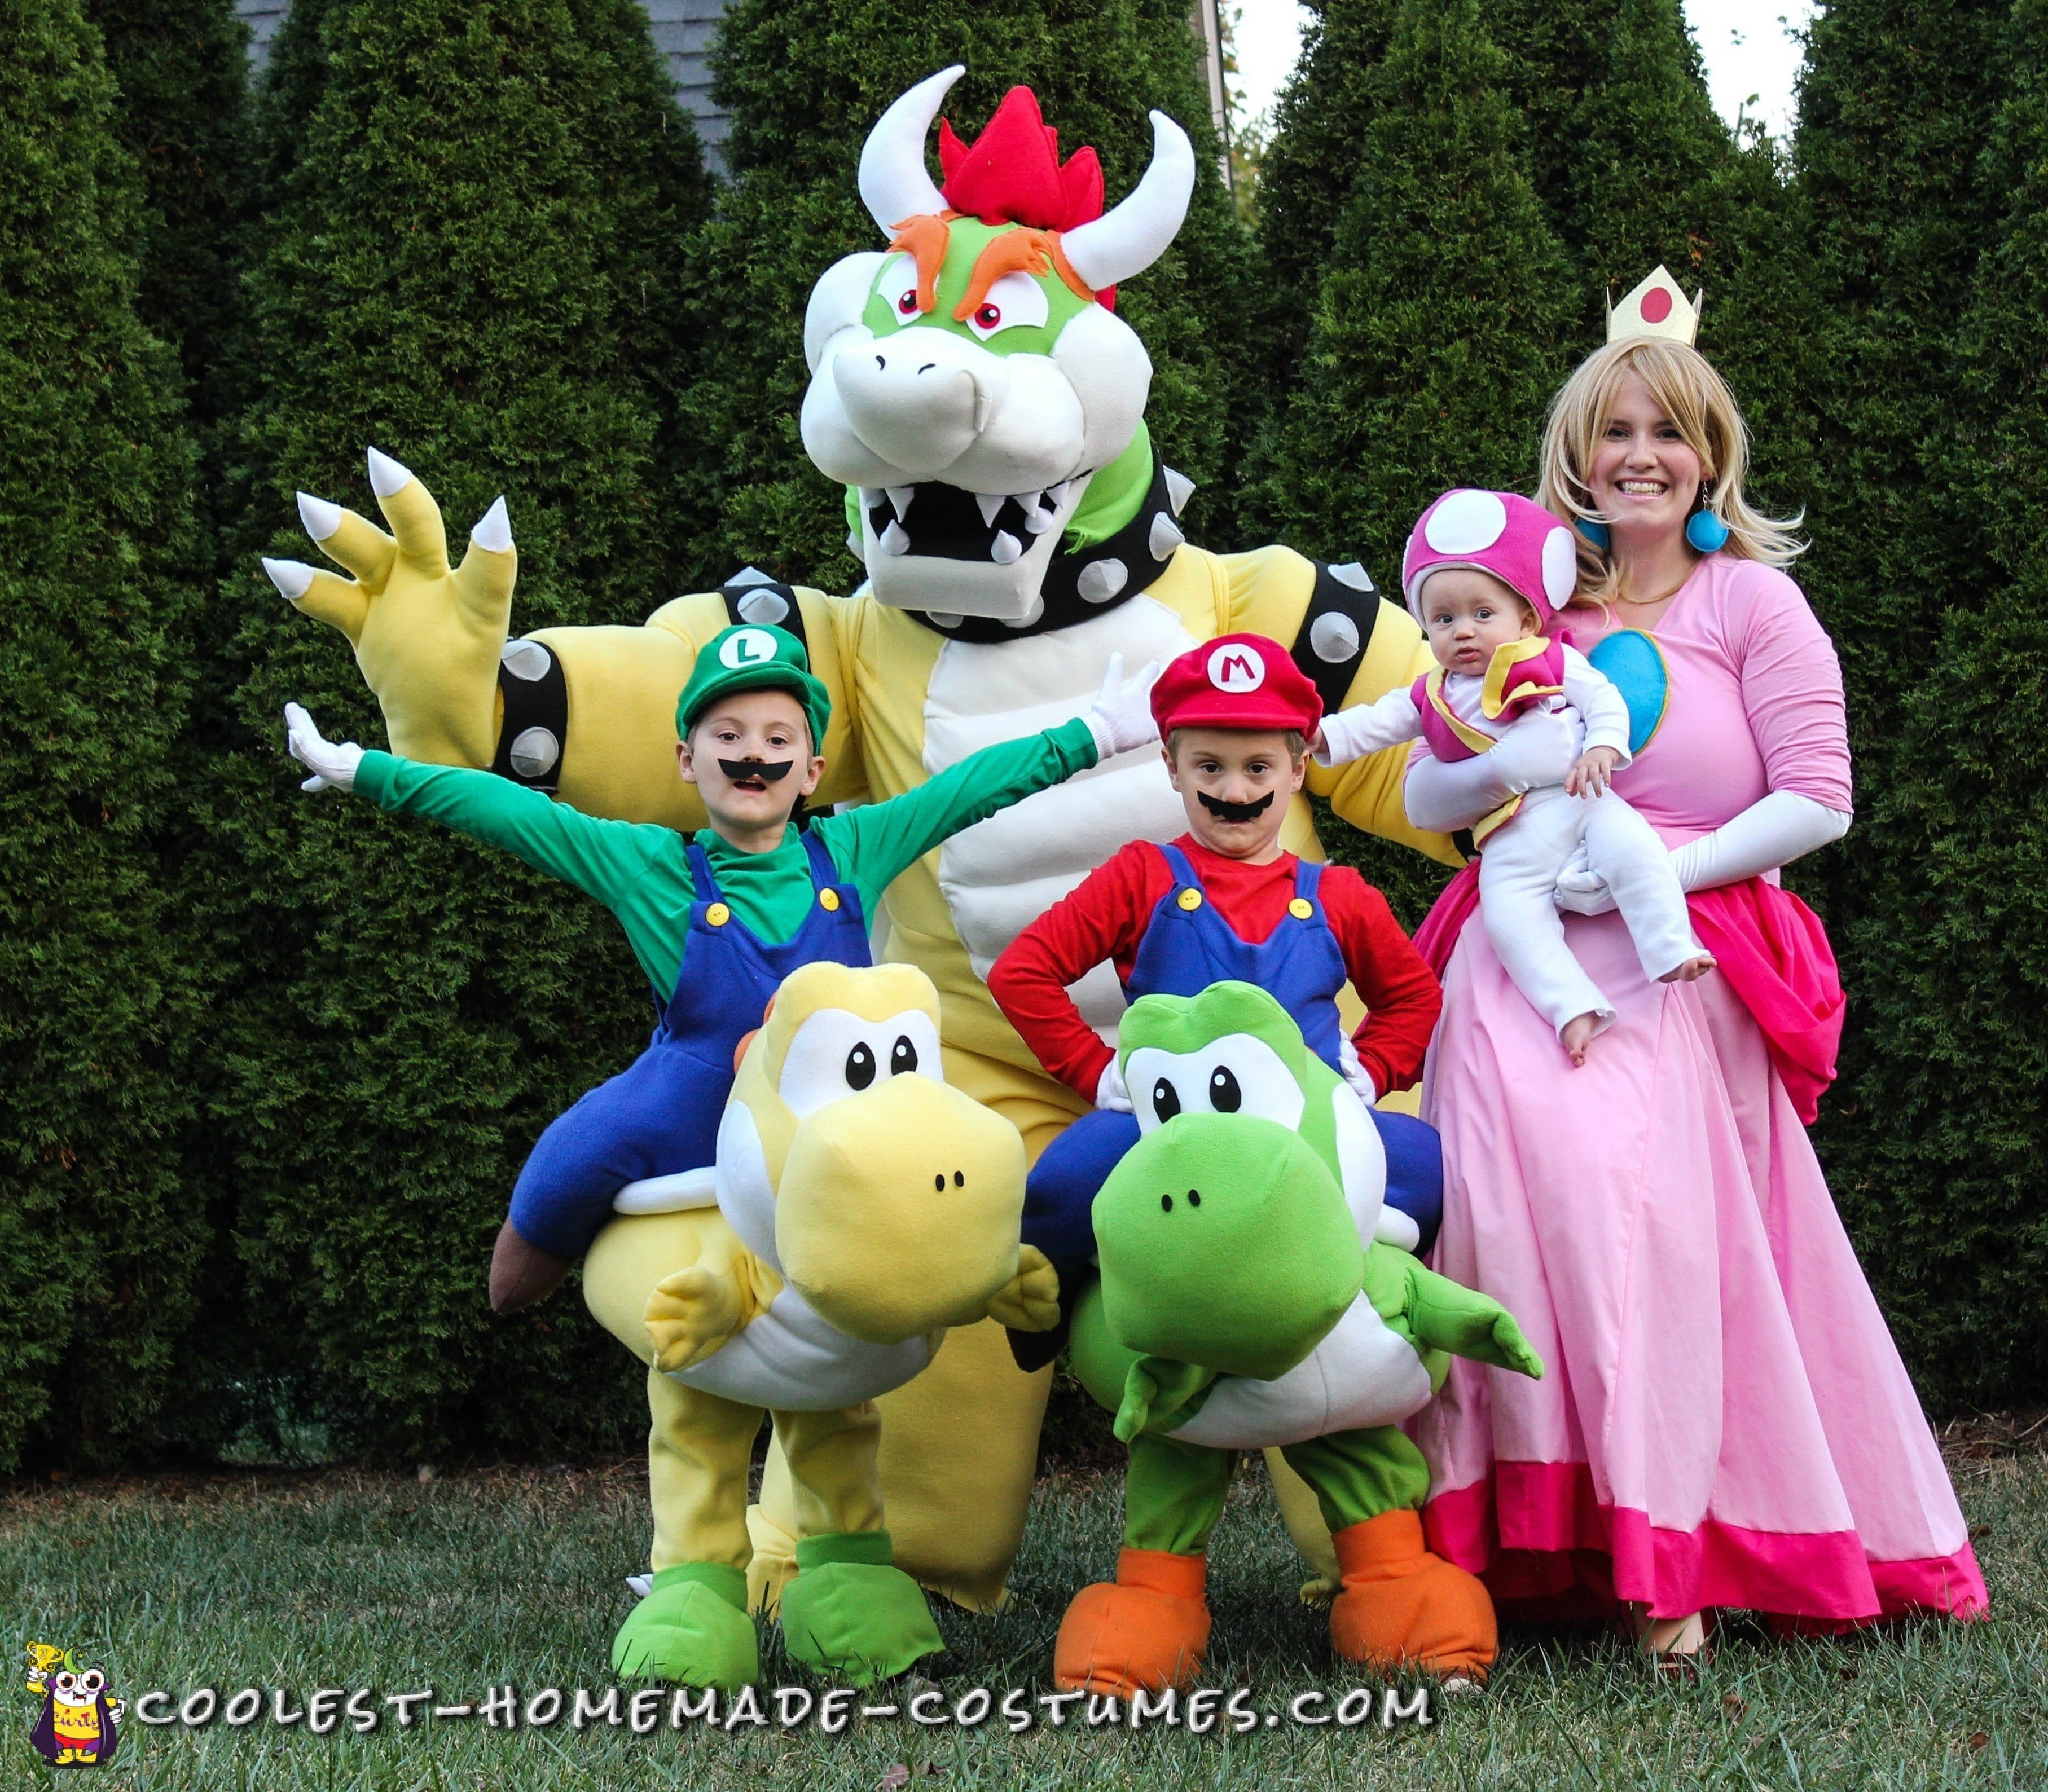 Awesome Homemade Mario Family Costume - Bowser 3aa30b7add22